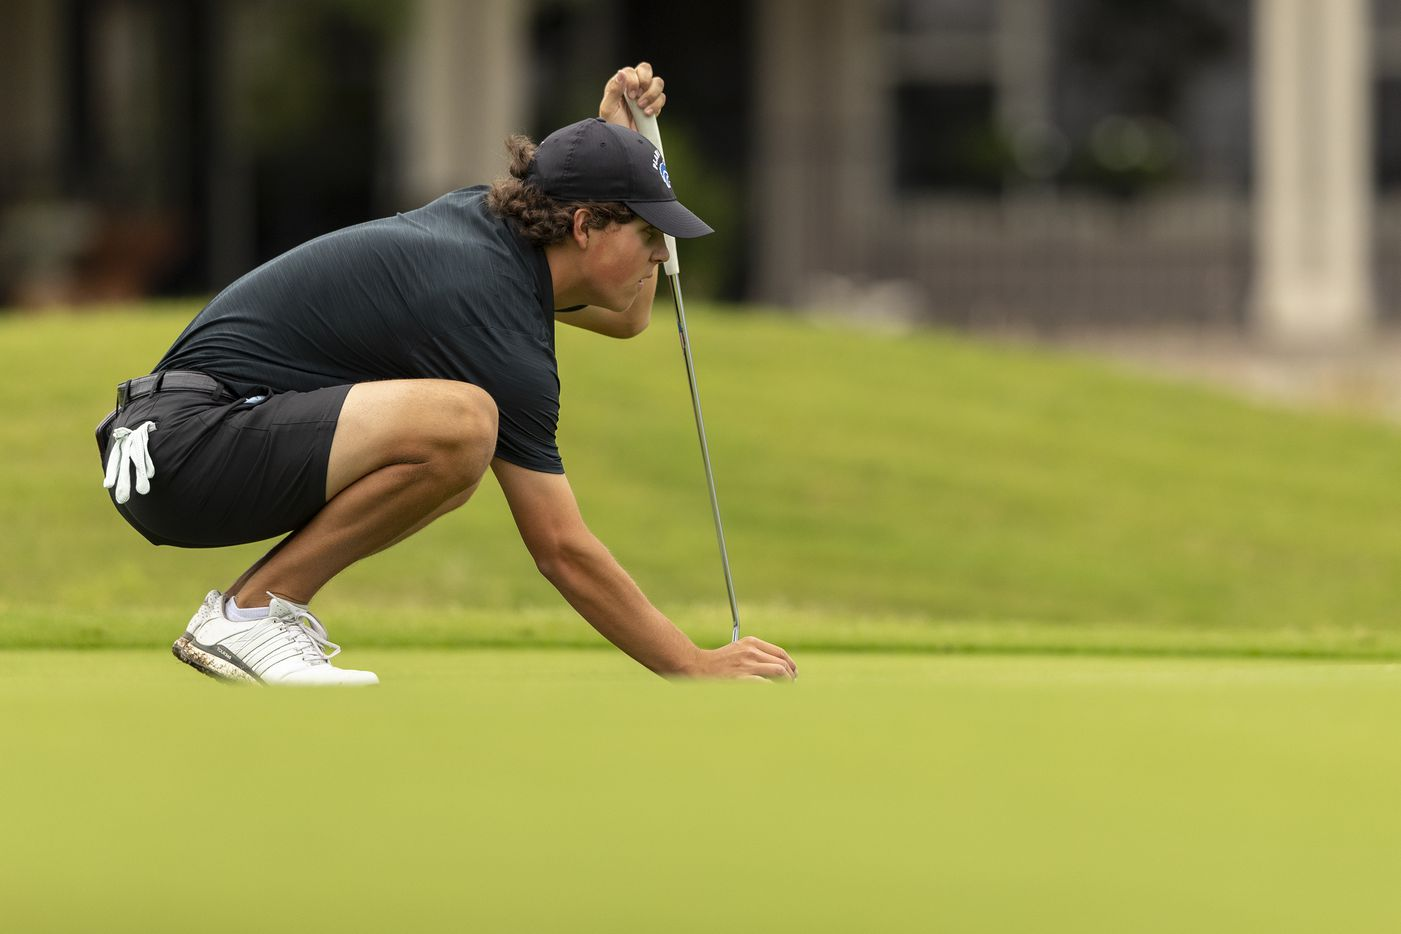 Plano WestÕs Matt Comegys studies his shot on the 6th green during the final round of the UIL Class 6A boys golf tournament in Georgetown, Tuesday, May 18, 2021. (Stephen Spillman/Special Contributor)